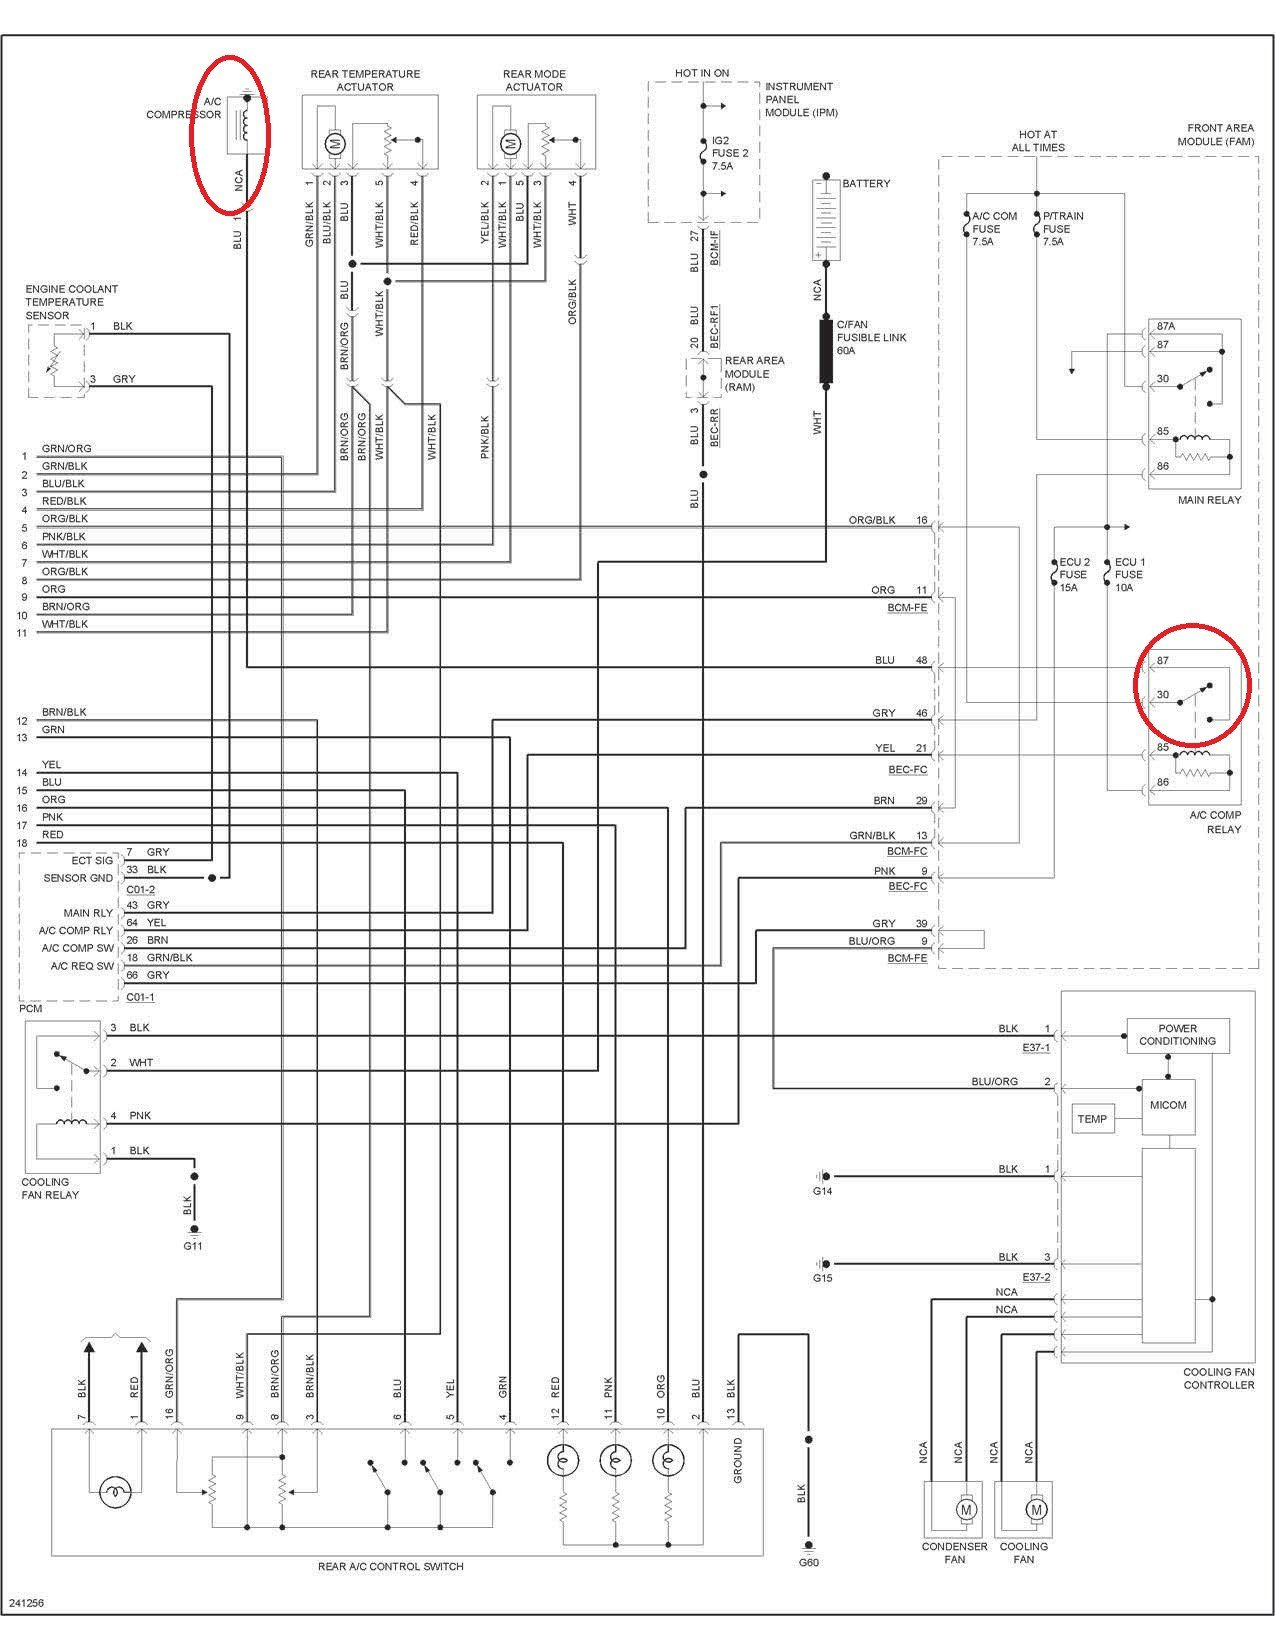 Hvac Fuse Wiring Diagram Great Design Of Bryant Diagrams Kia Spectra Air Conditioning 36 Basic